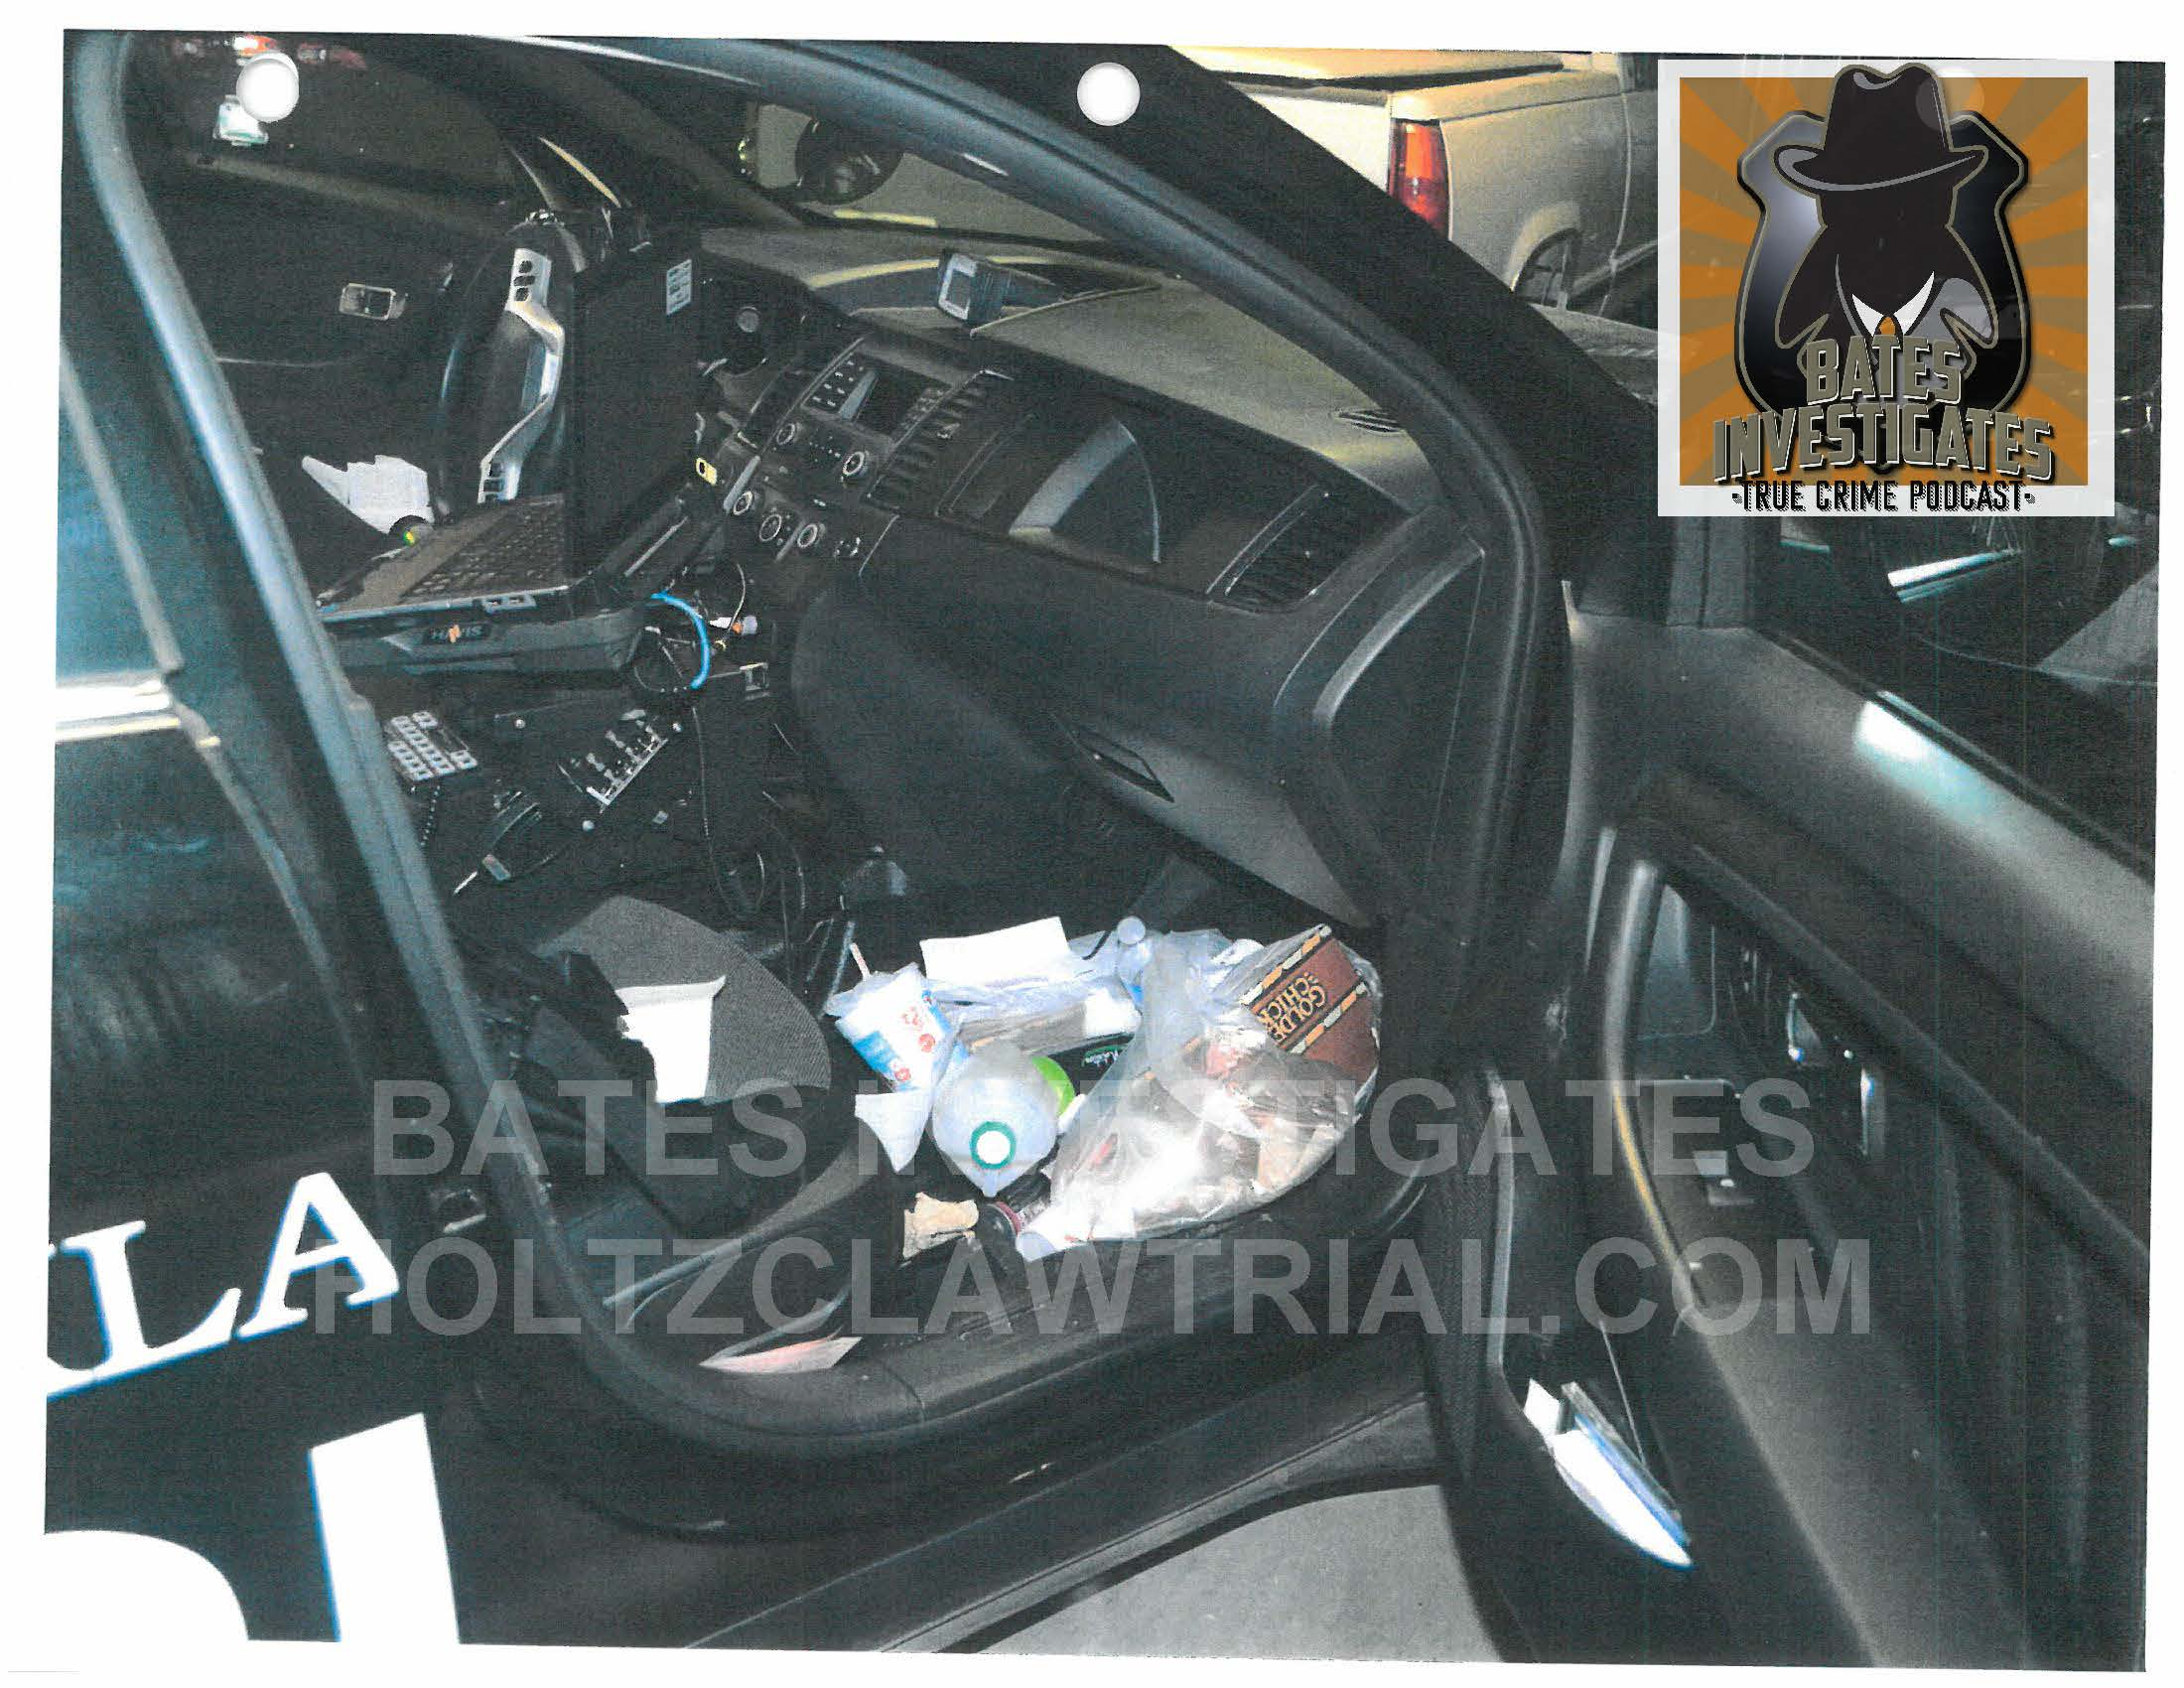 Holtzclaw Daniel - OCPD Patrol Car Photos Watermarked_Page_45.jpg